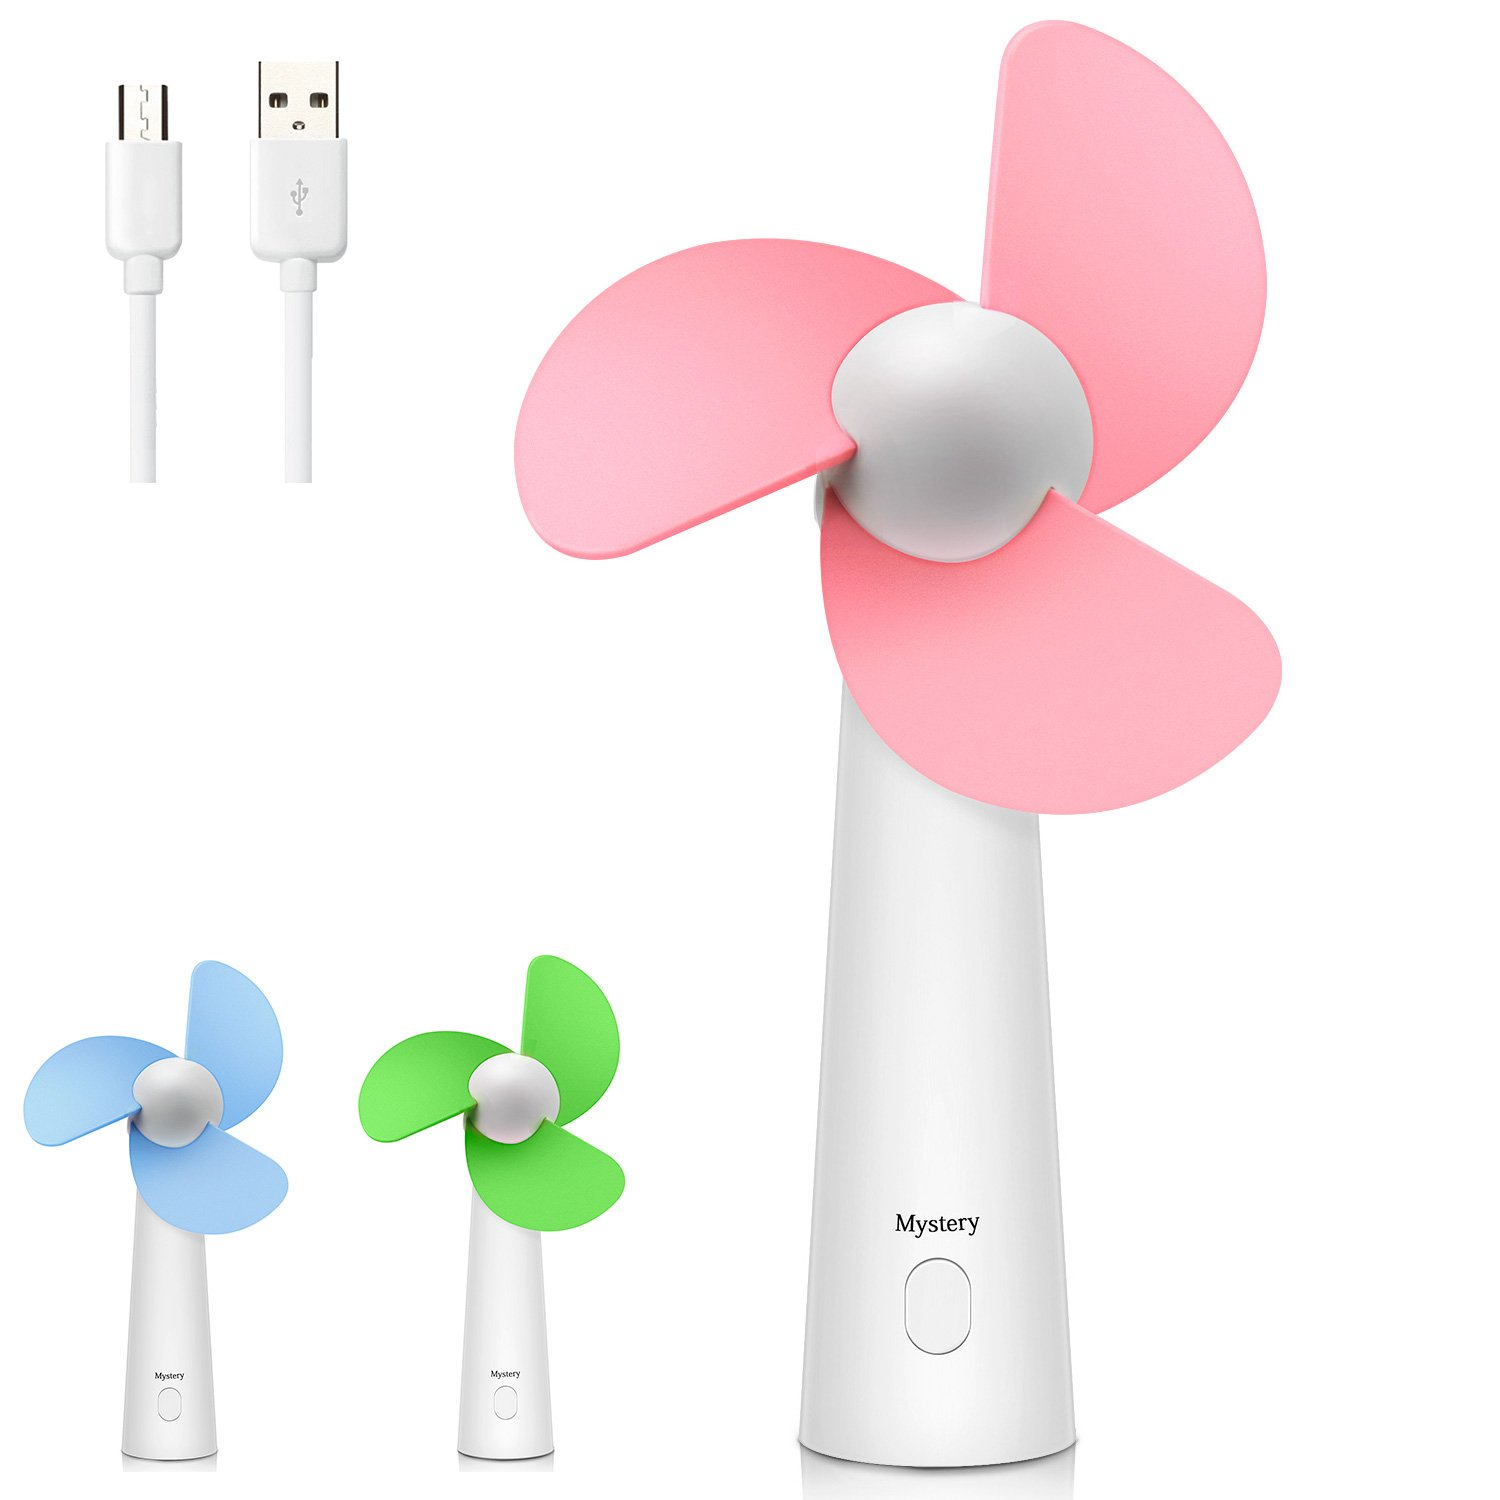 Mystery Mini Handheld Fan Personal Portable Fan USB Rechargeable Cooling Fan Quiet Powerful Desk Table Fan for Home Office Outdoor Travel (Blue)